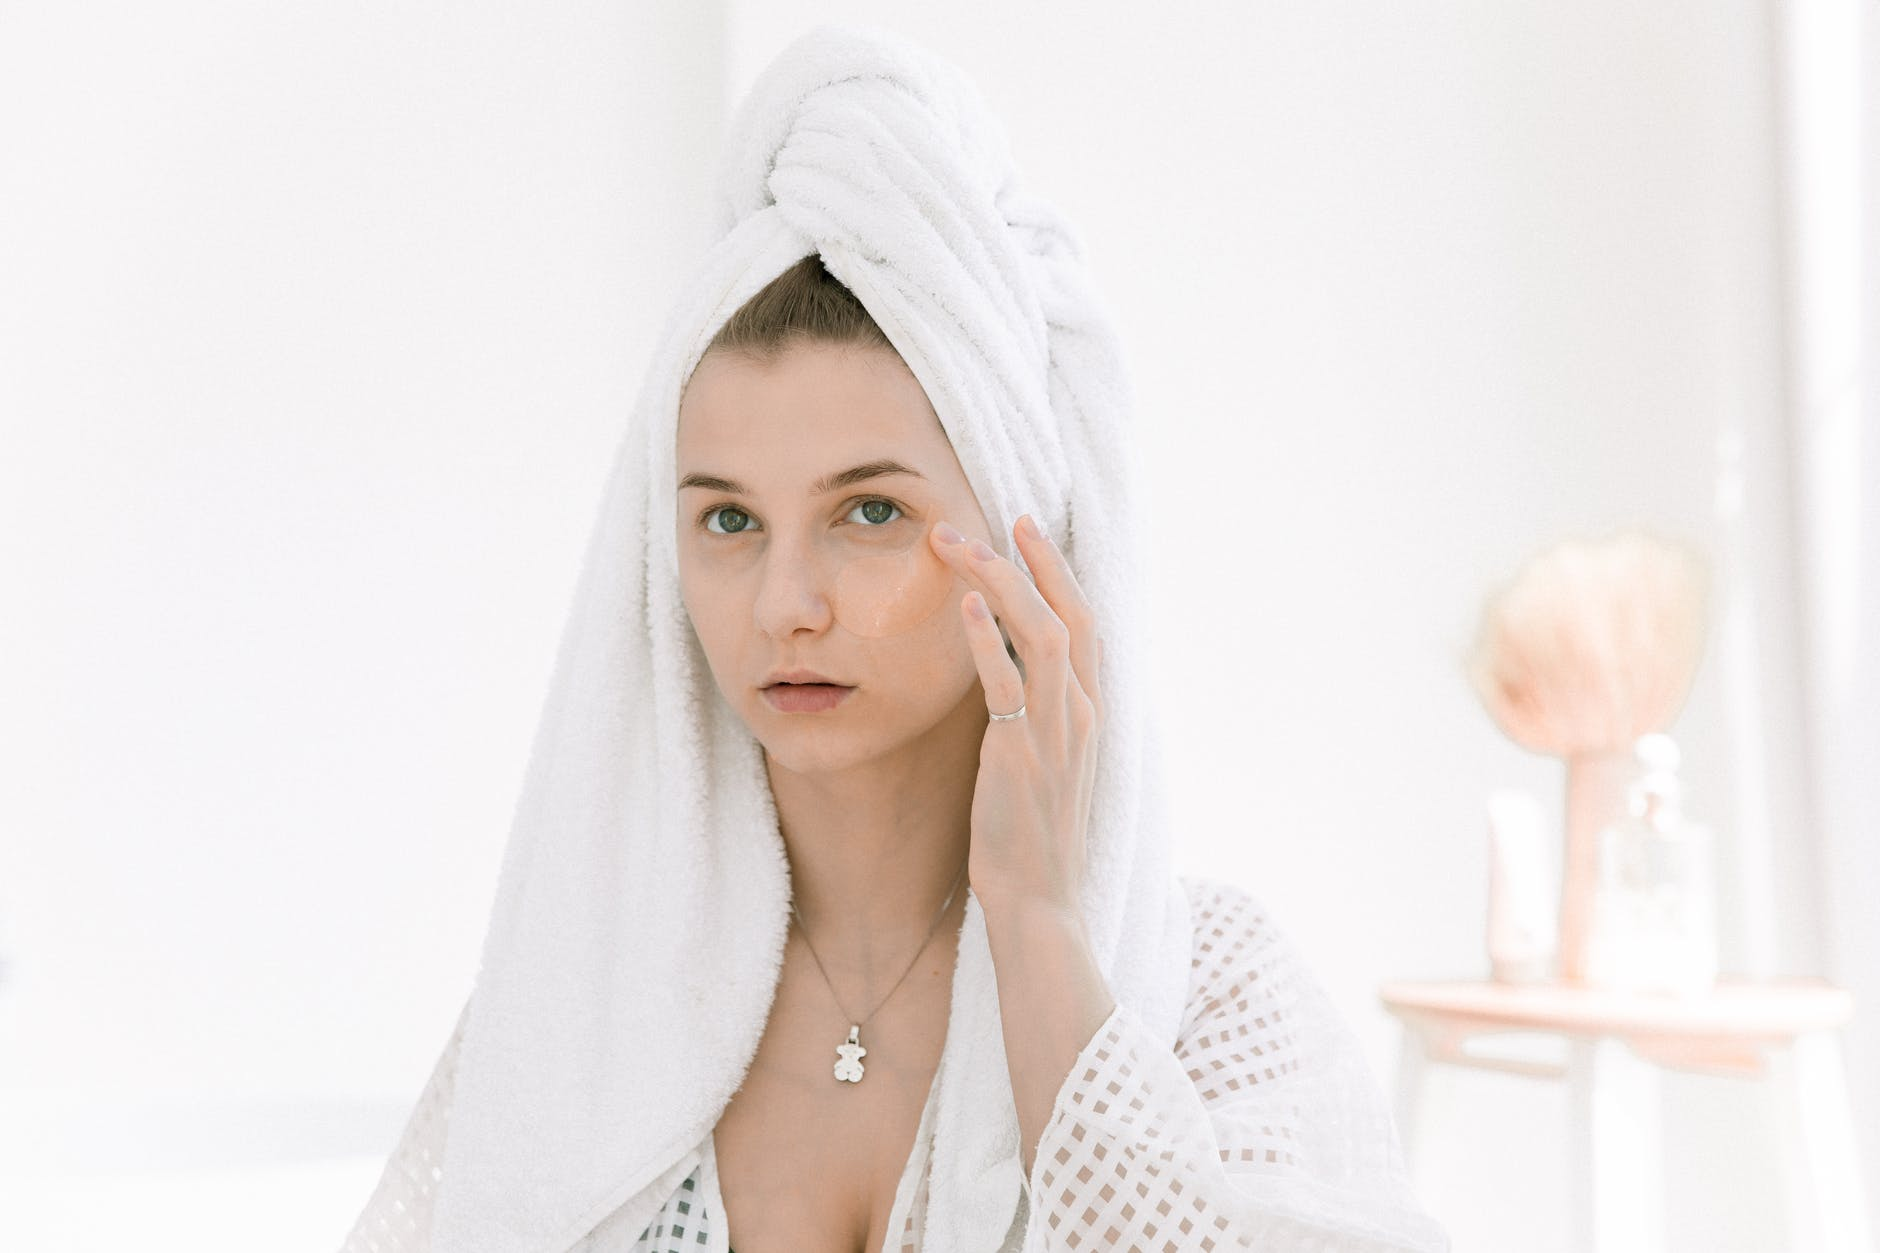 Nighttime Skincare Tips That Make a Big Difference